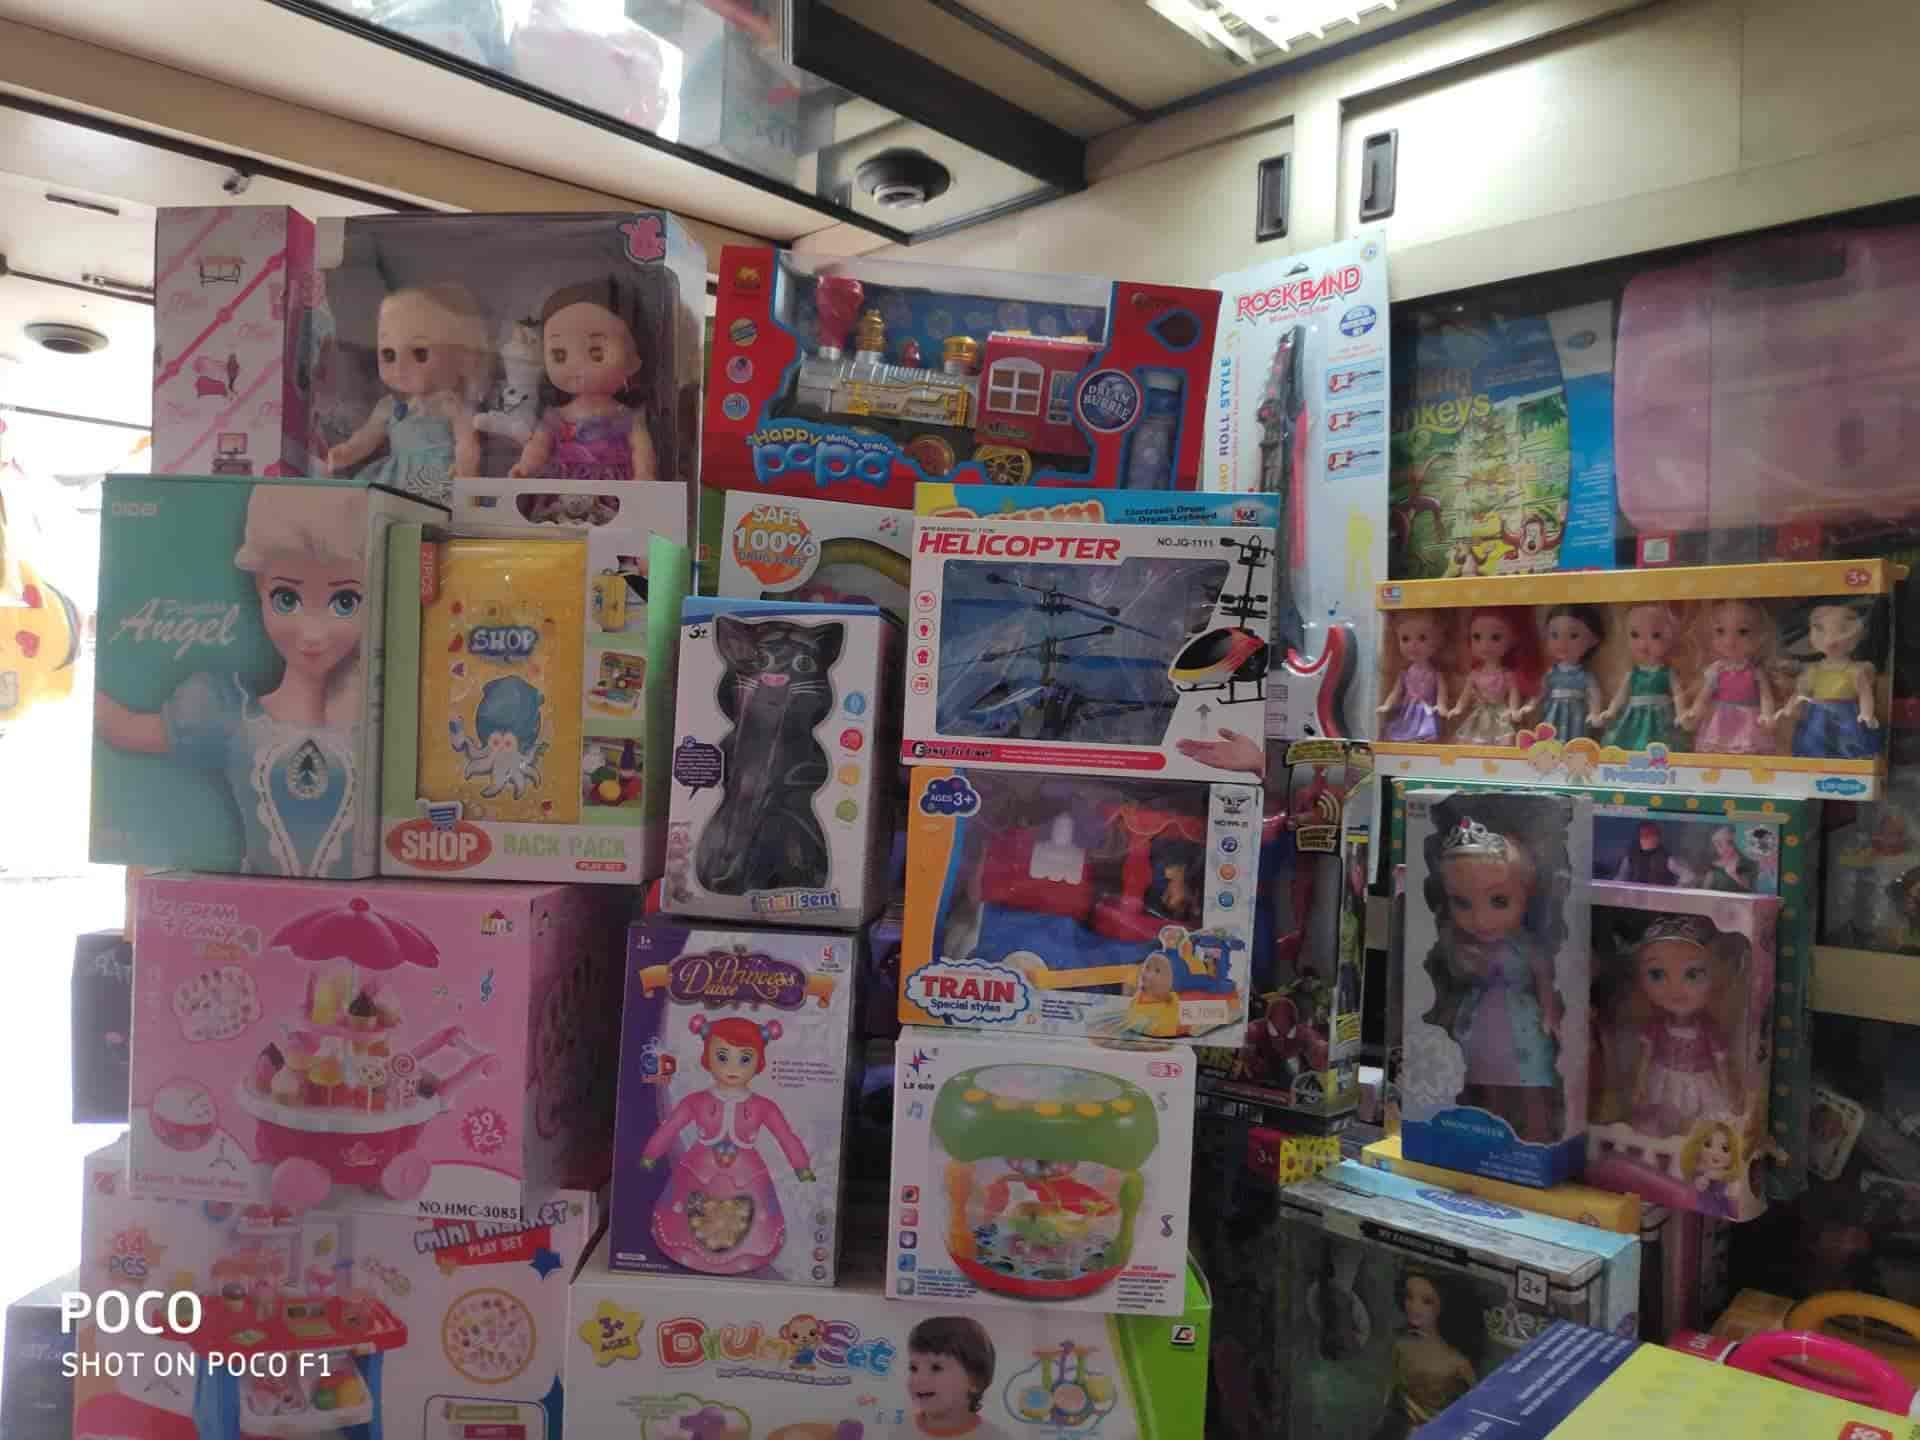 Venus Toy Shop, Behala - Toy Shops in Kolkata - Justdial